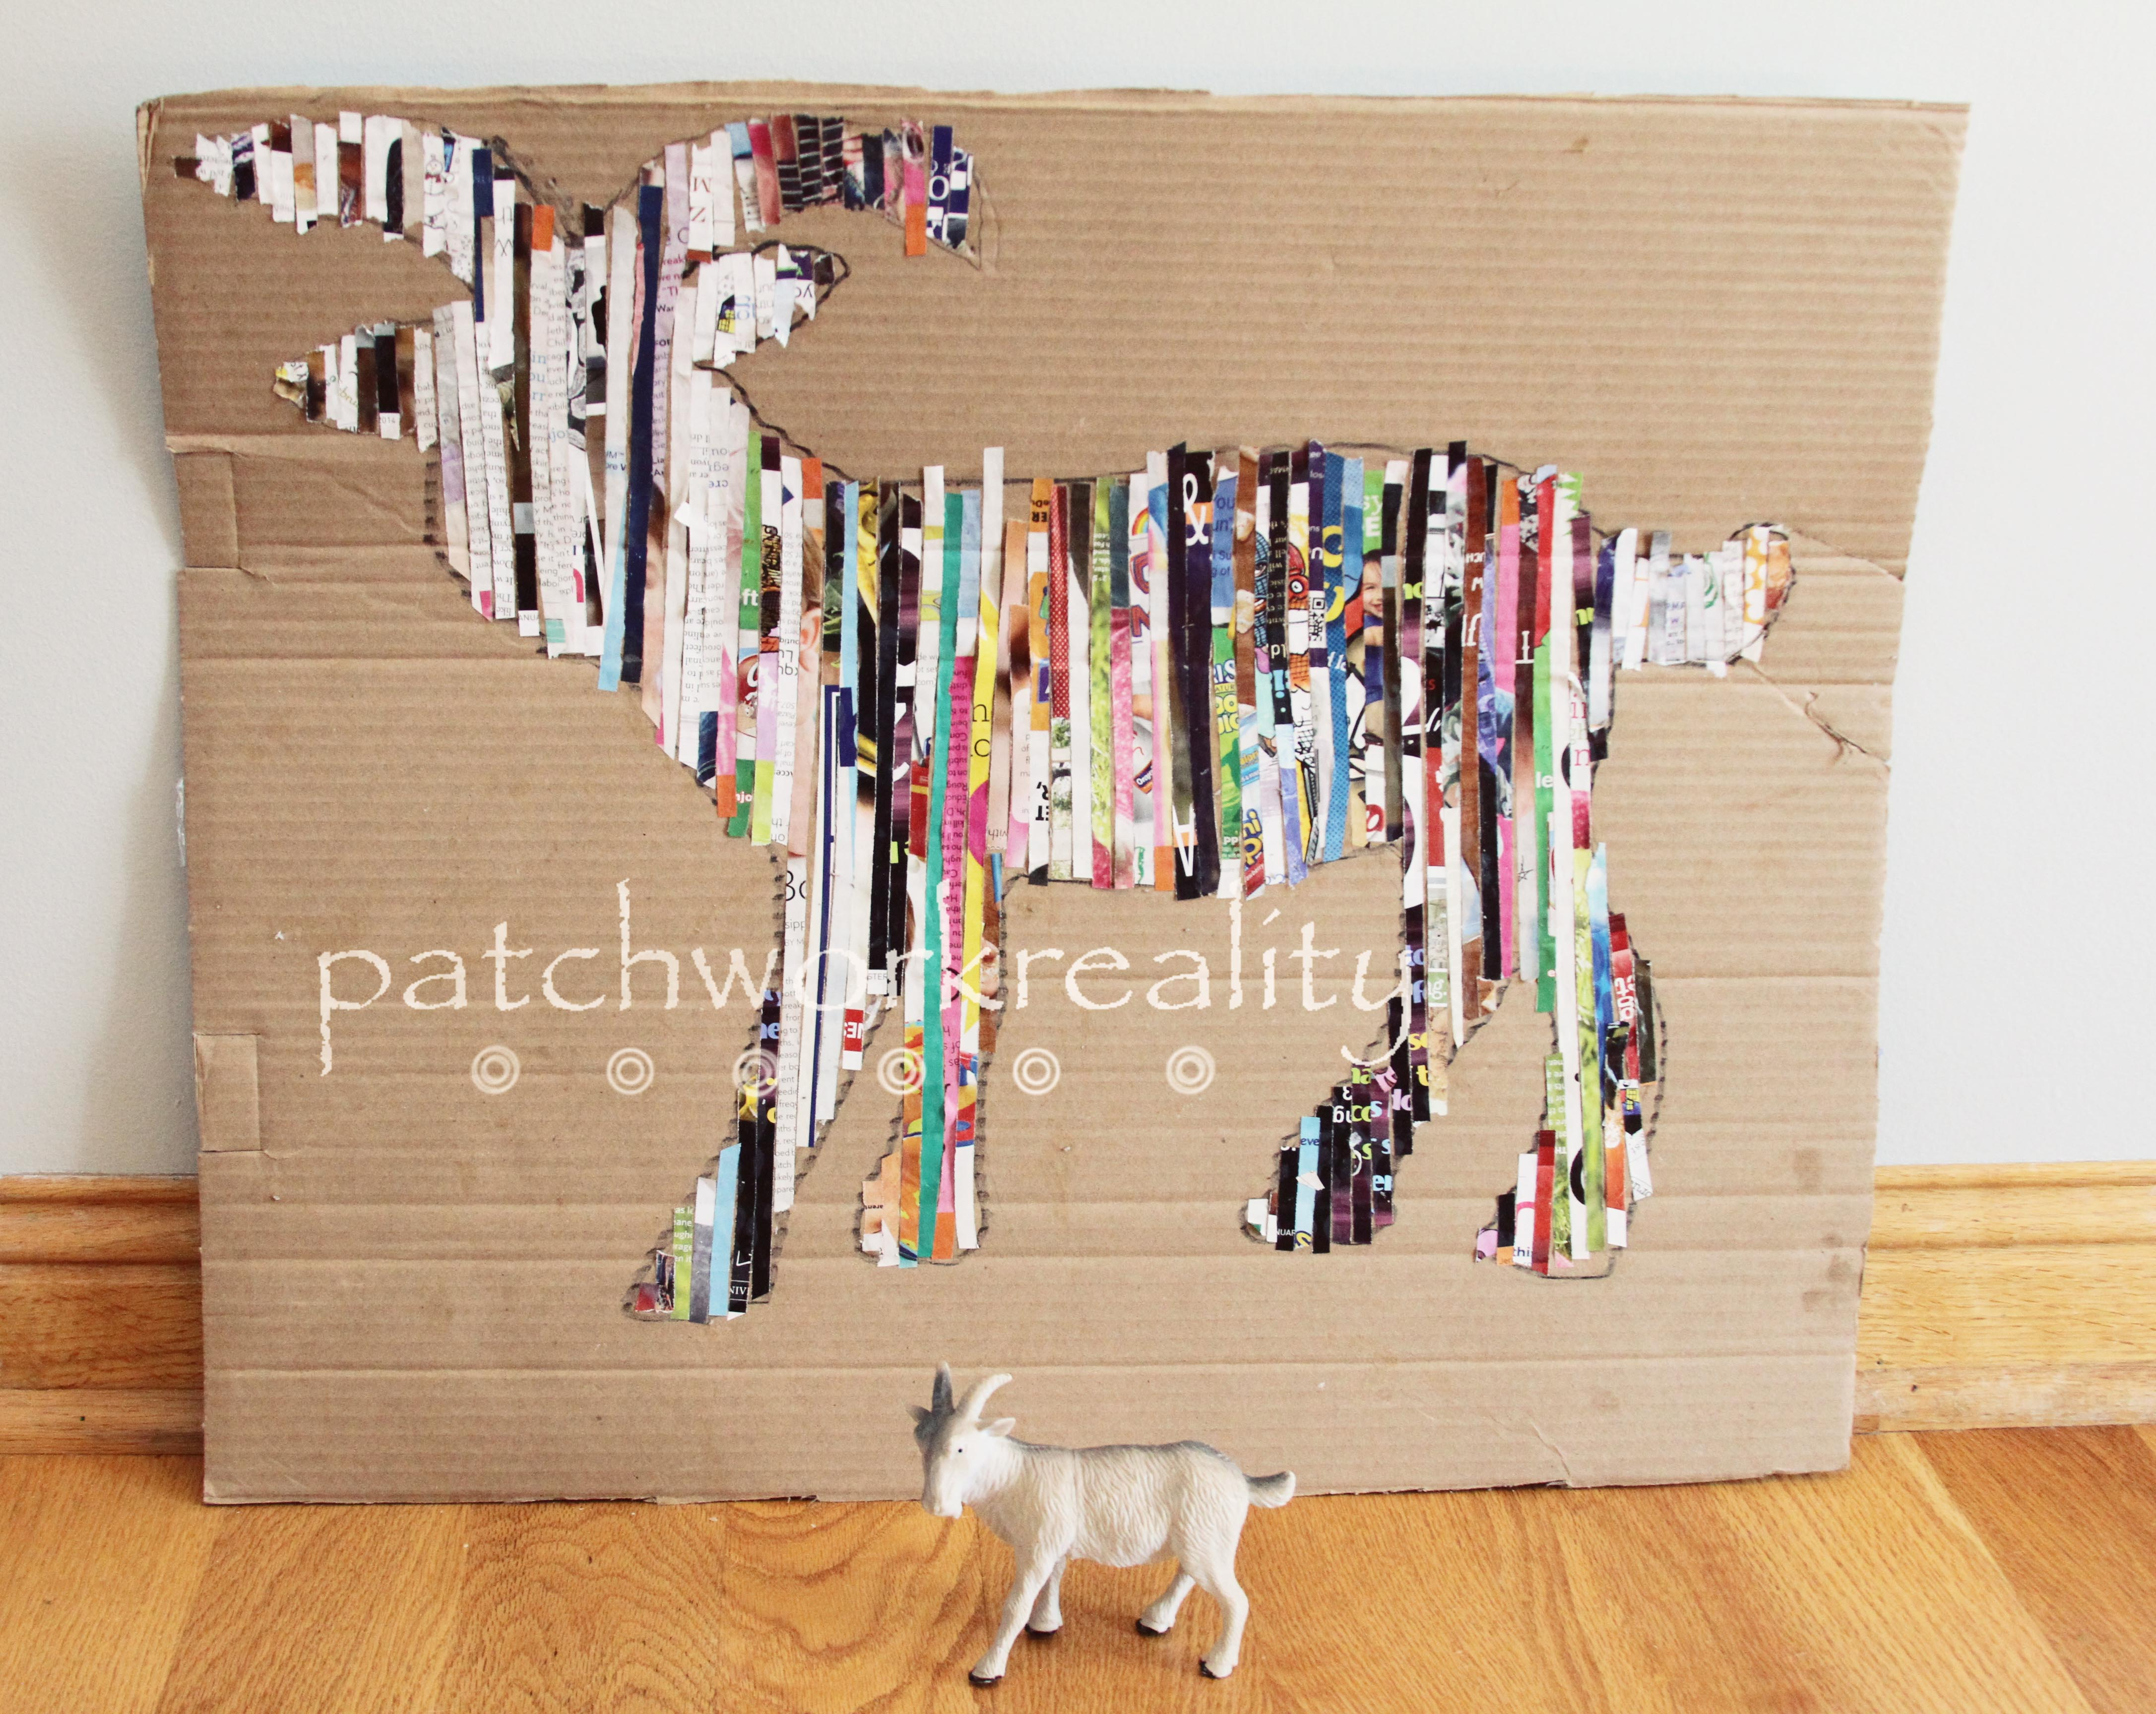 create patchwork reality